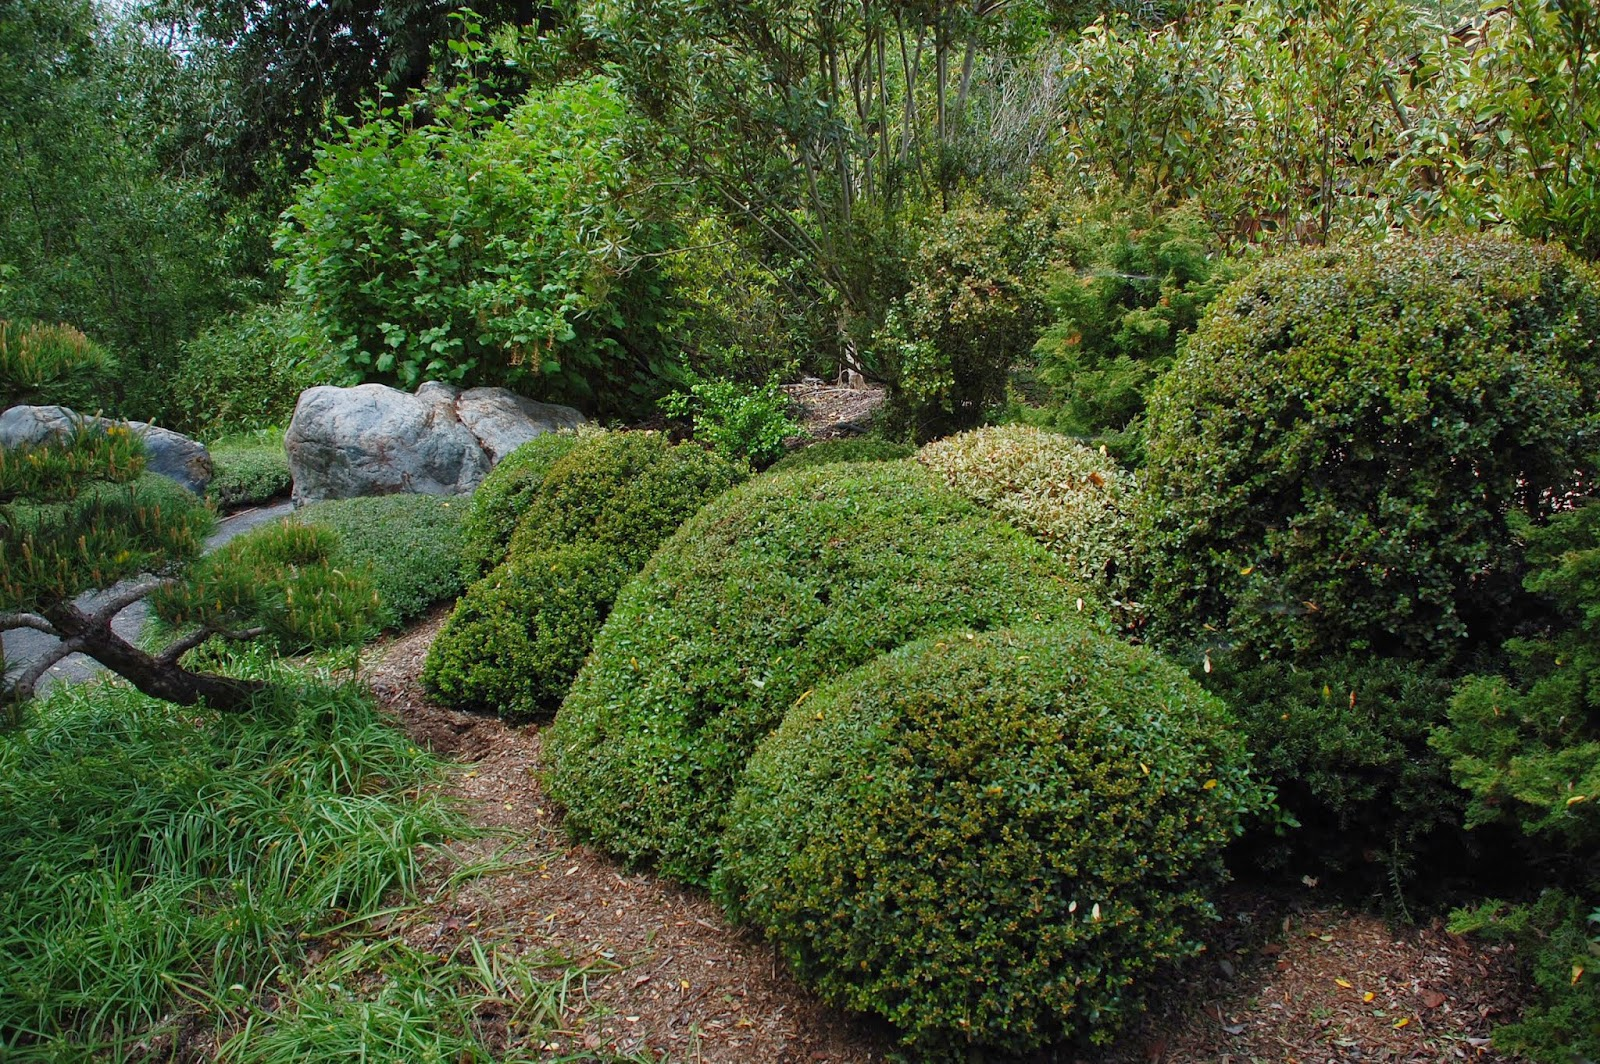 Robert ketchell 39 s blog pruning and the japanese garden for Best plants for japanese garden